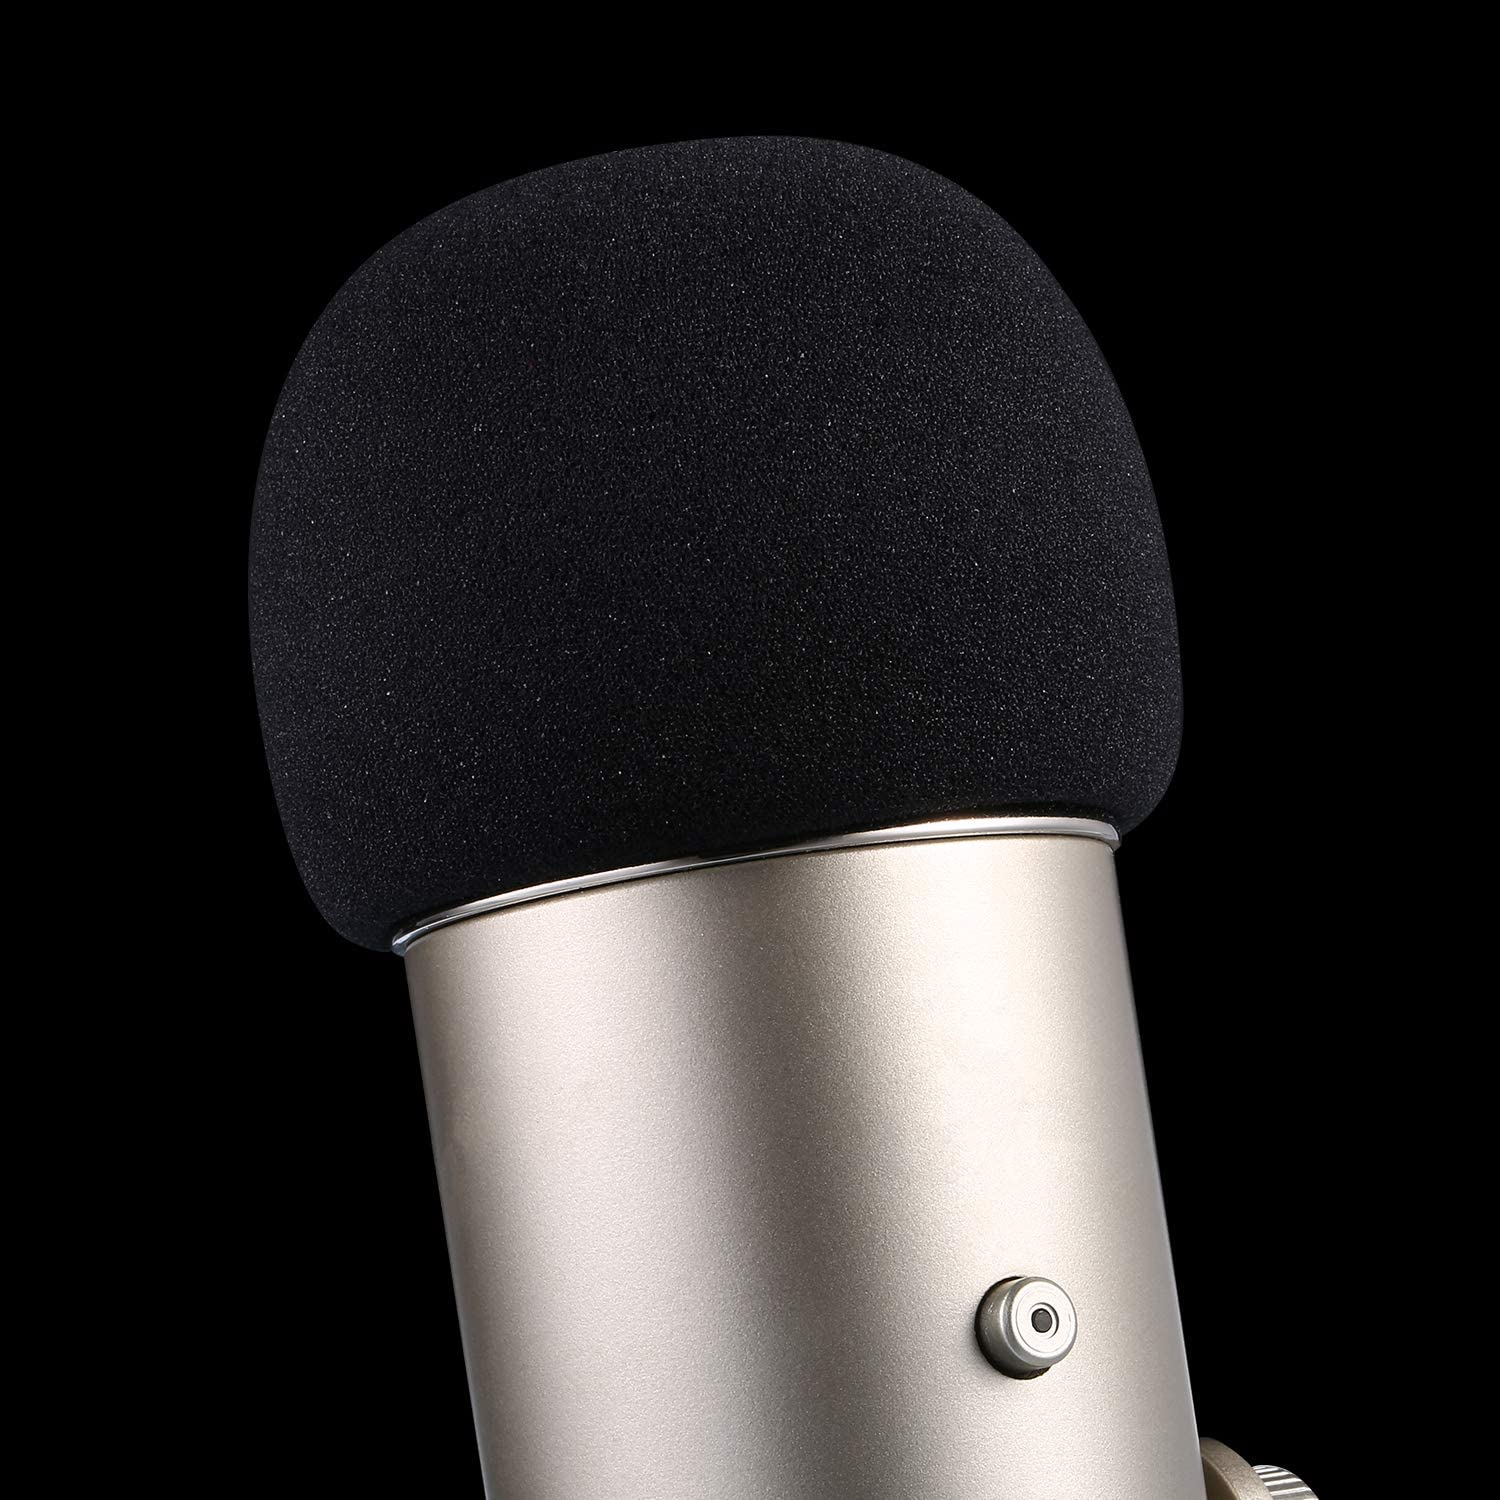 Mic Cover Foam Microphone Windscreen for Blue Yeti, Yeti Pro Condenser Microphone (Size A, 1 Pack) : Musical Instruments